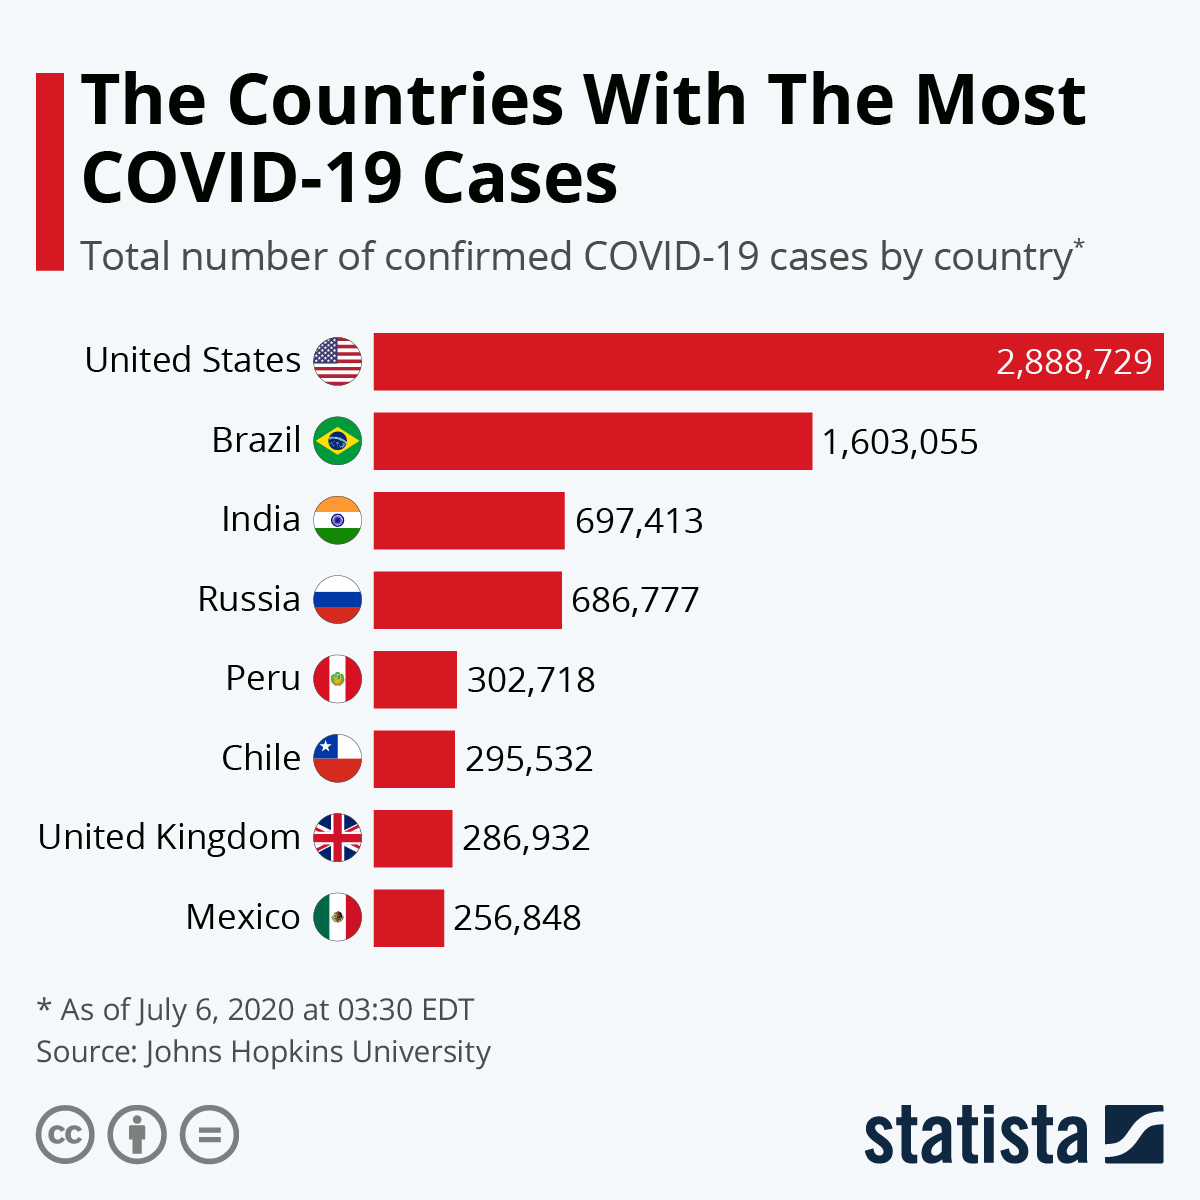 The Countries With The Most COVID-19 Cases #infographic